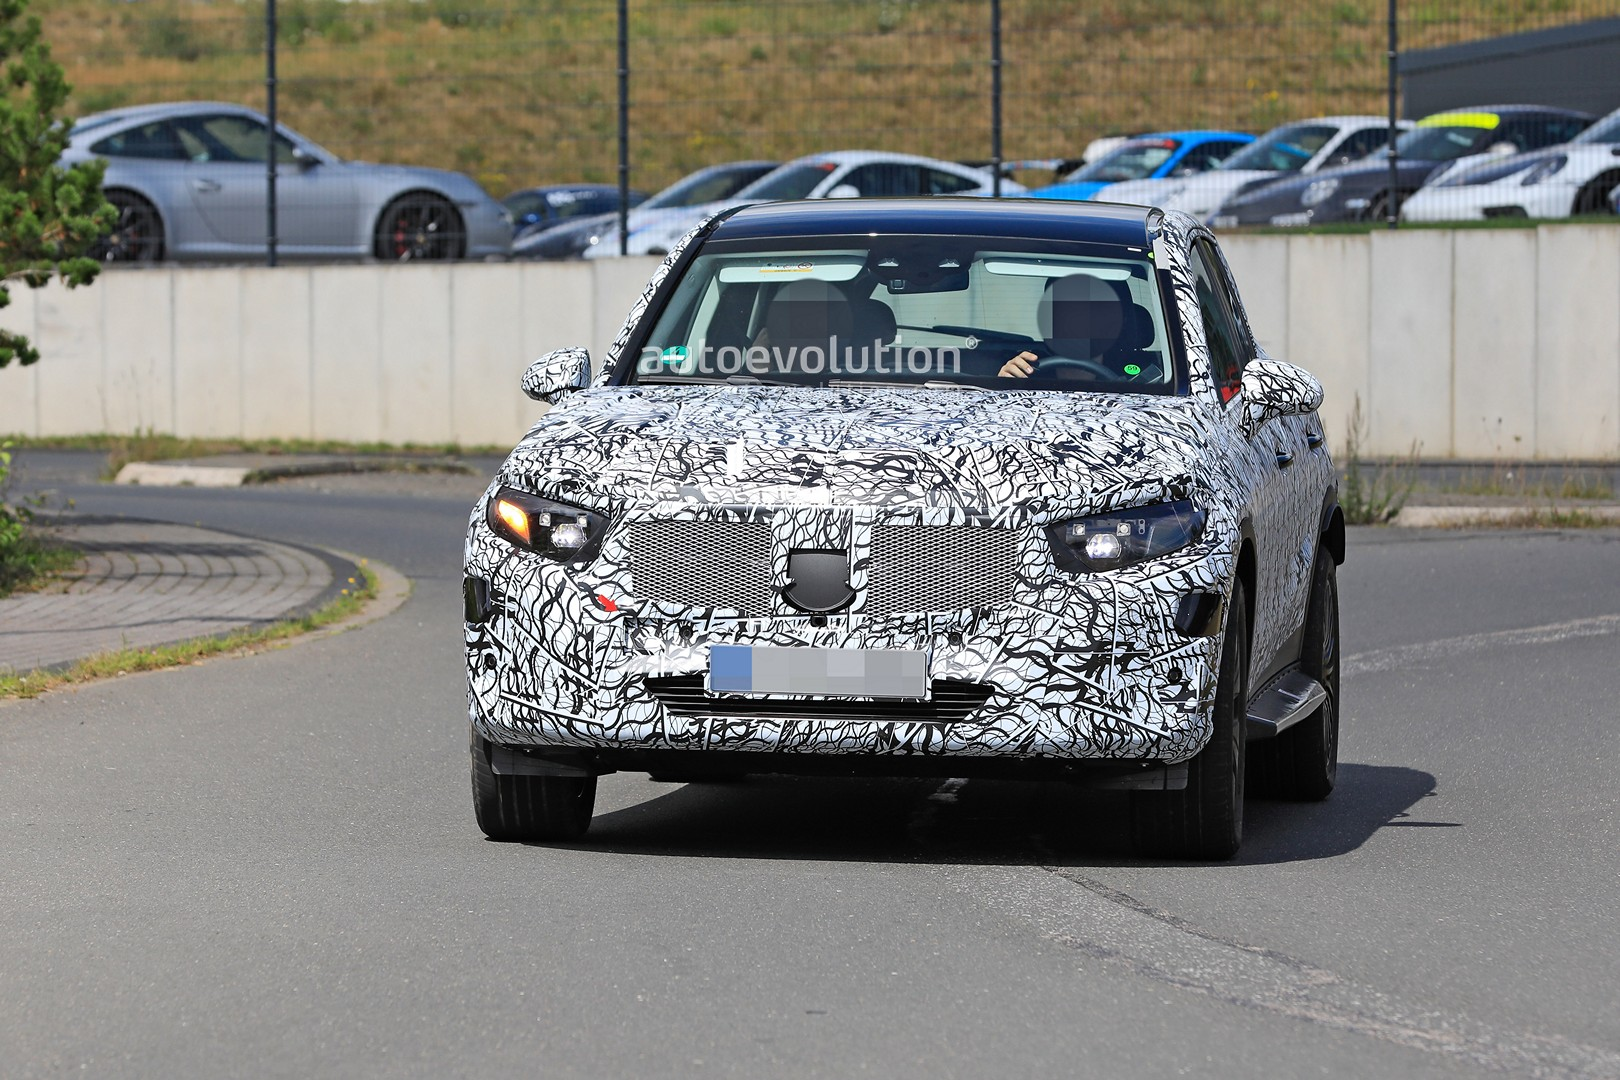 2021 - [Mercedes-Benz] GLC II - Page 2 All-new-2022-mercedes-glc-class-spied-getting-to-be-the-king-of-cuvs-147569_1